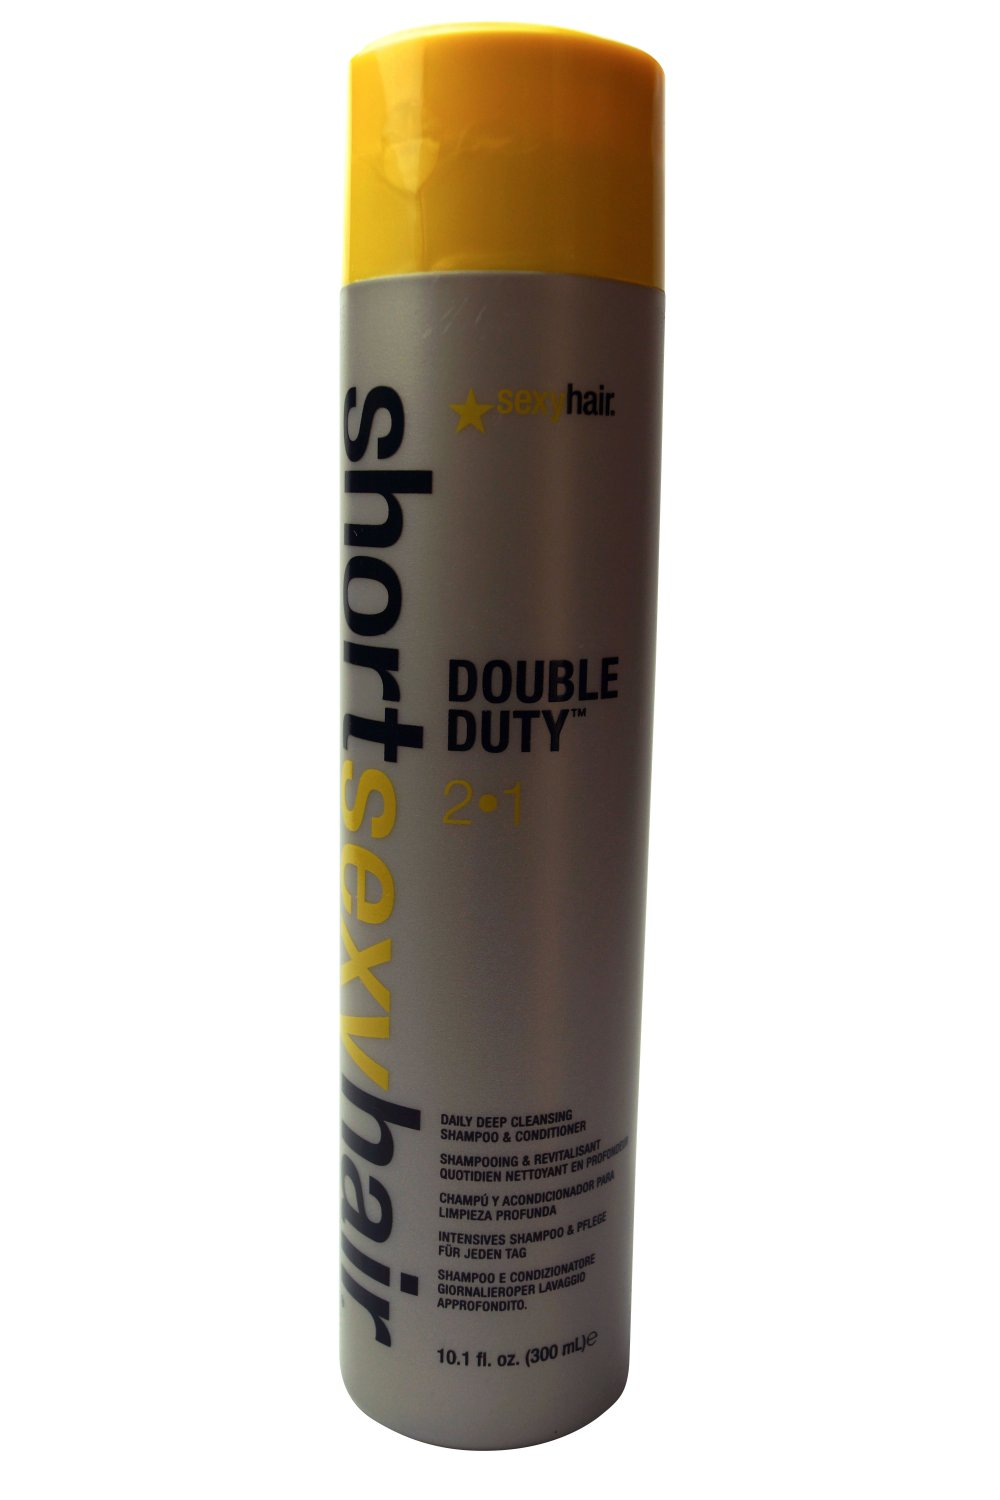 Sexy Hair Short Sexy Hair Double Duty 2 In 1 Shampoo & Conditioner, 10.1 Oz